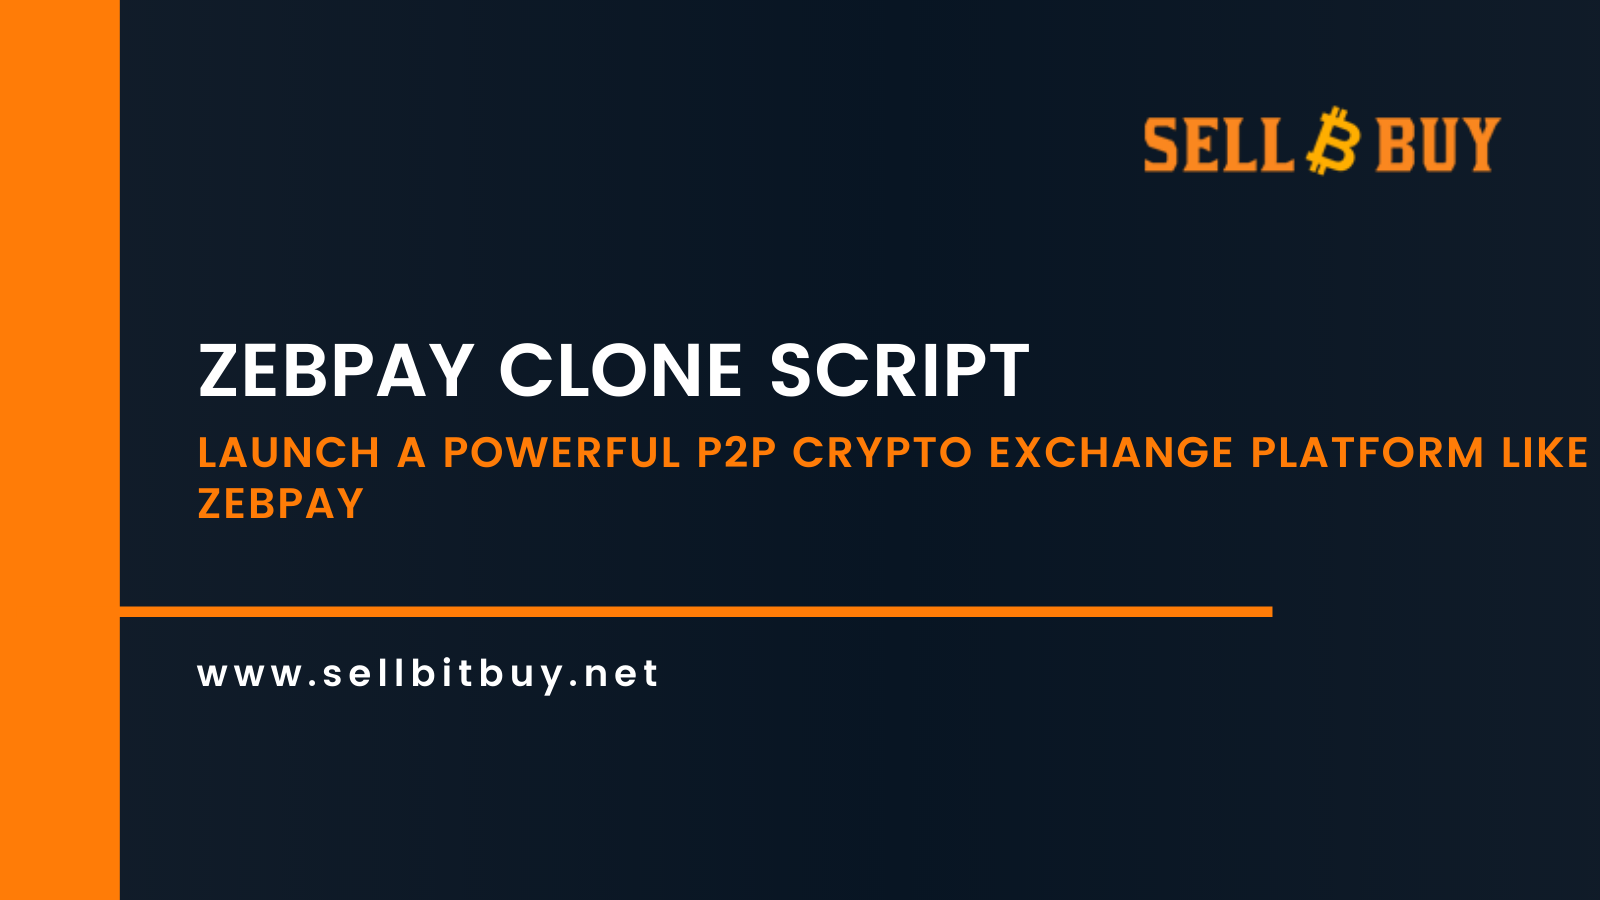 Zebpay Clone Script To Launch a Powerful Crypto Exchange Like Zebpay